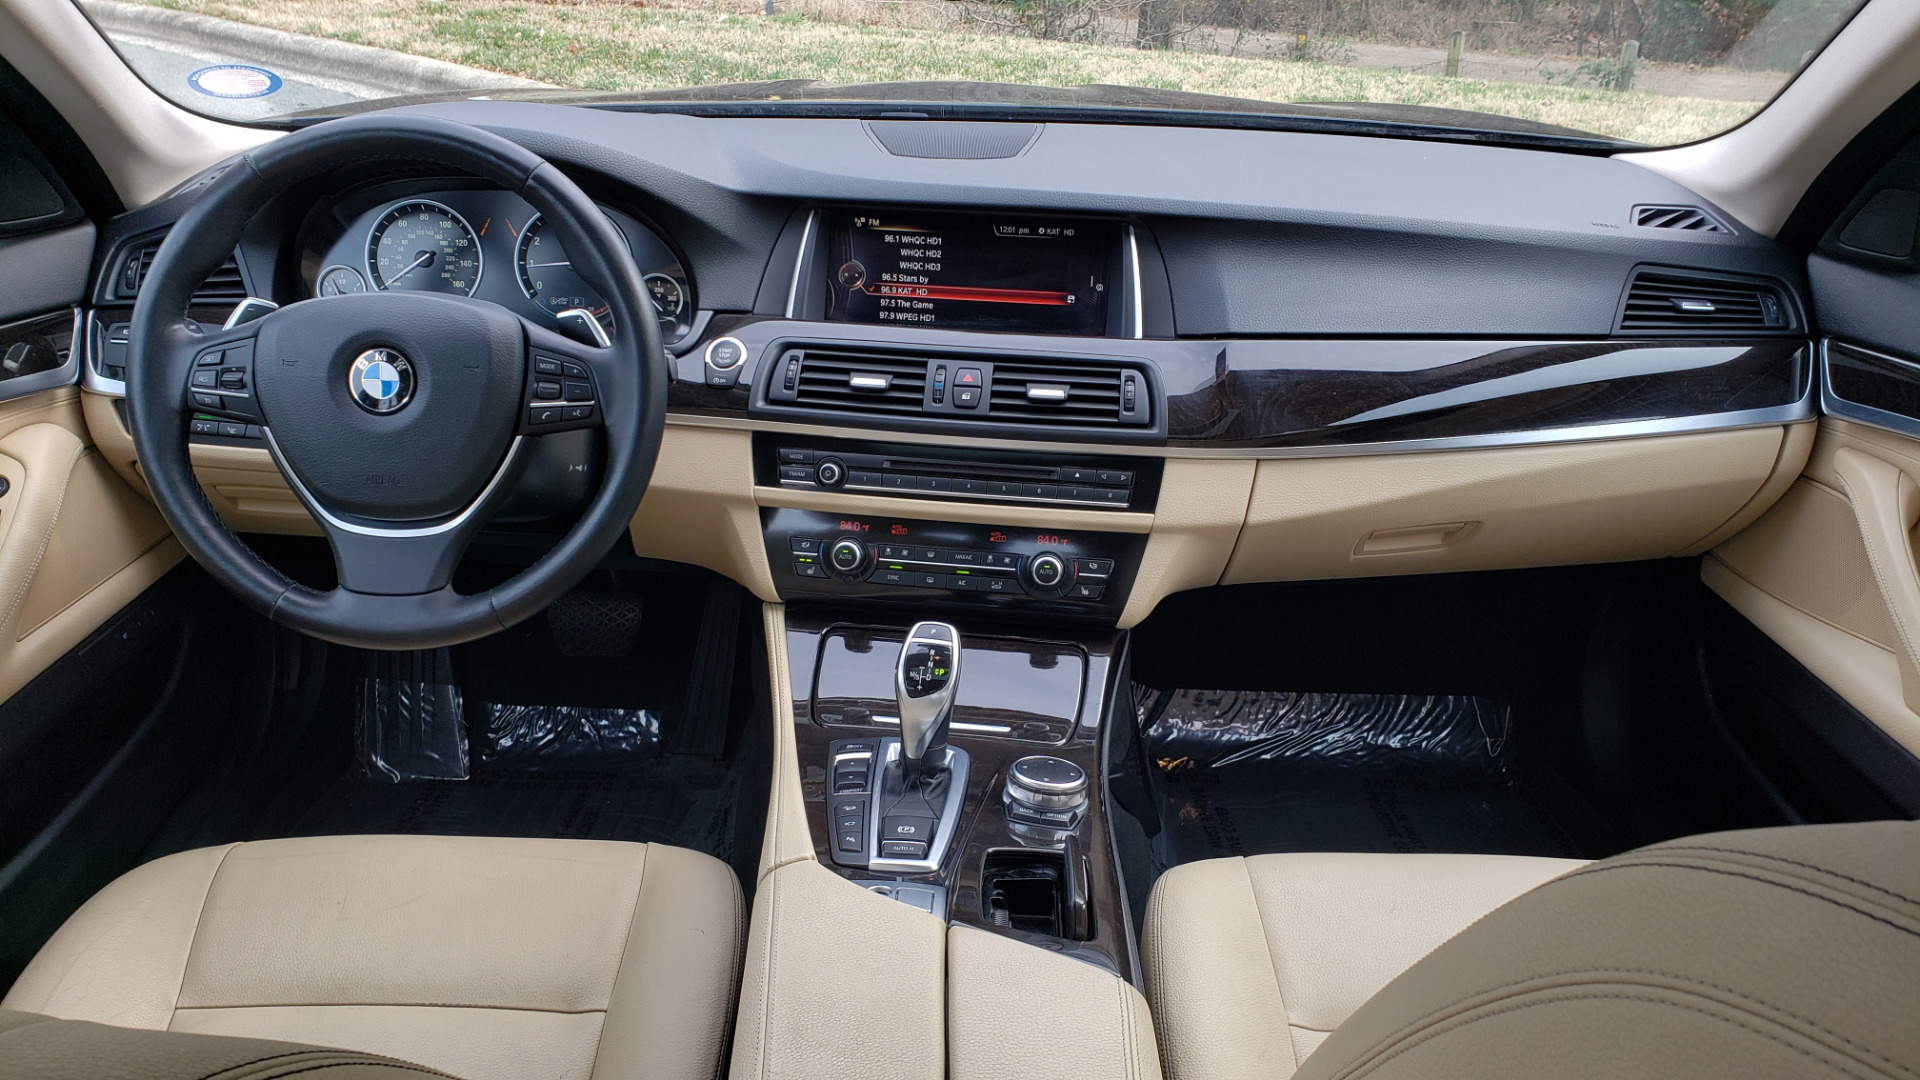 Used 2016 BMW 5 SERIES 528i XDRIVE / PREM PKG / DRVR ASST PLUS / LUXURY / COLD WTHR for sale Sold at Formula Imports in Charlotte NC 28227 79